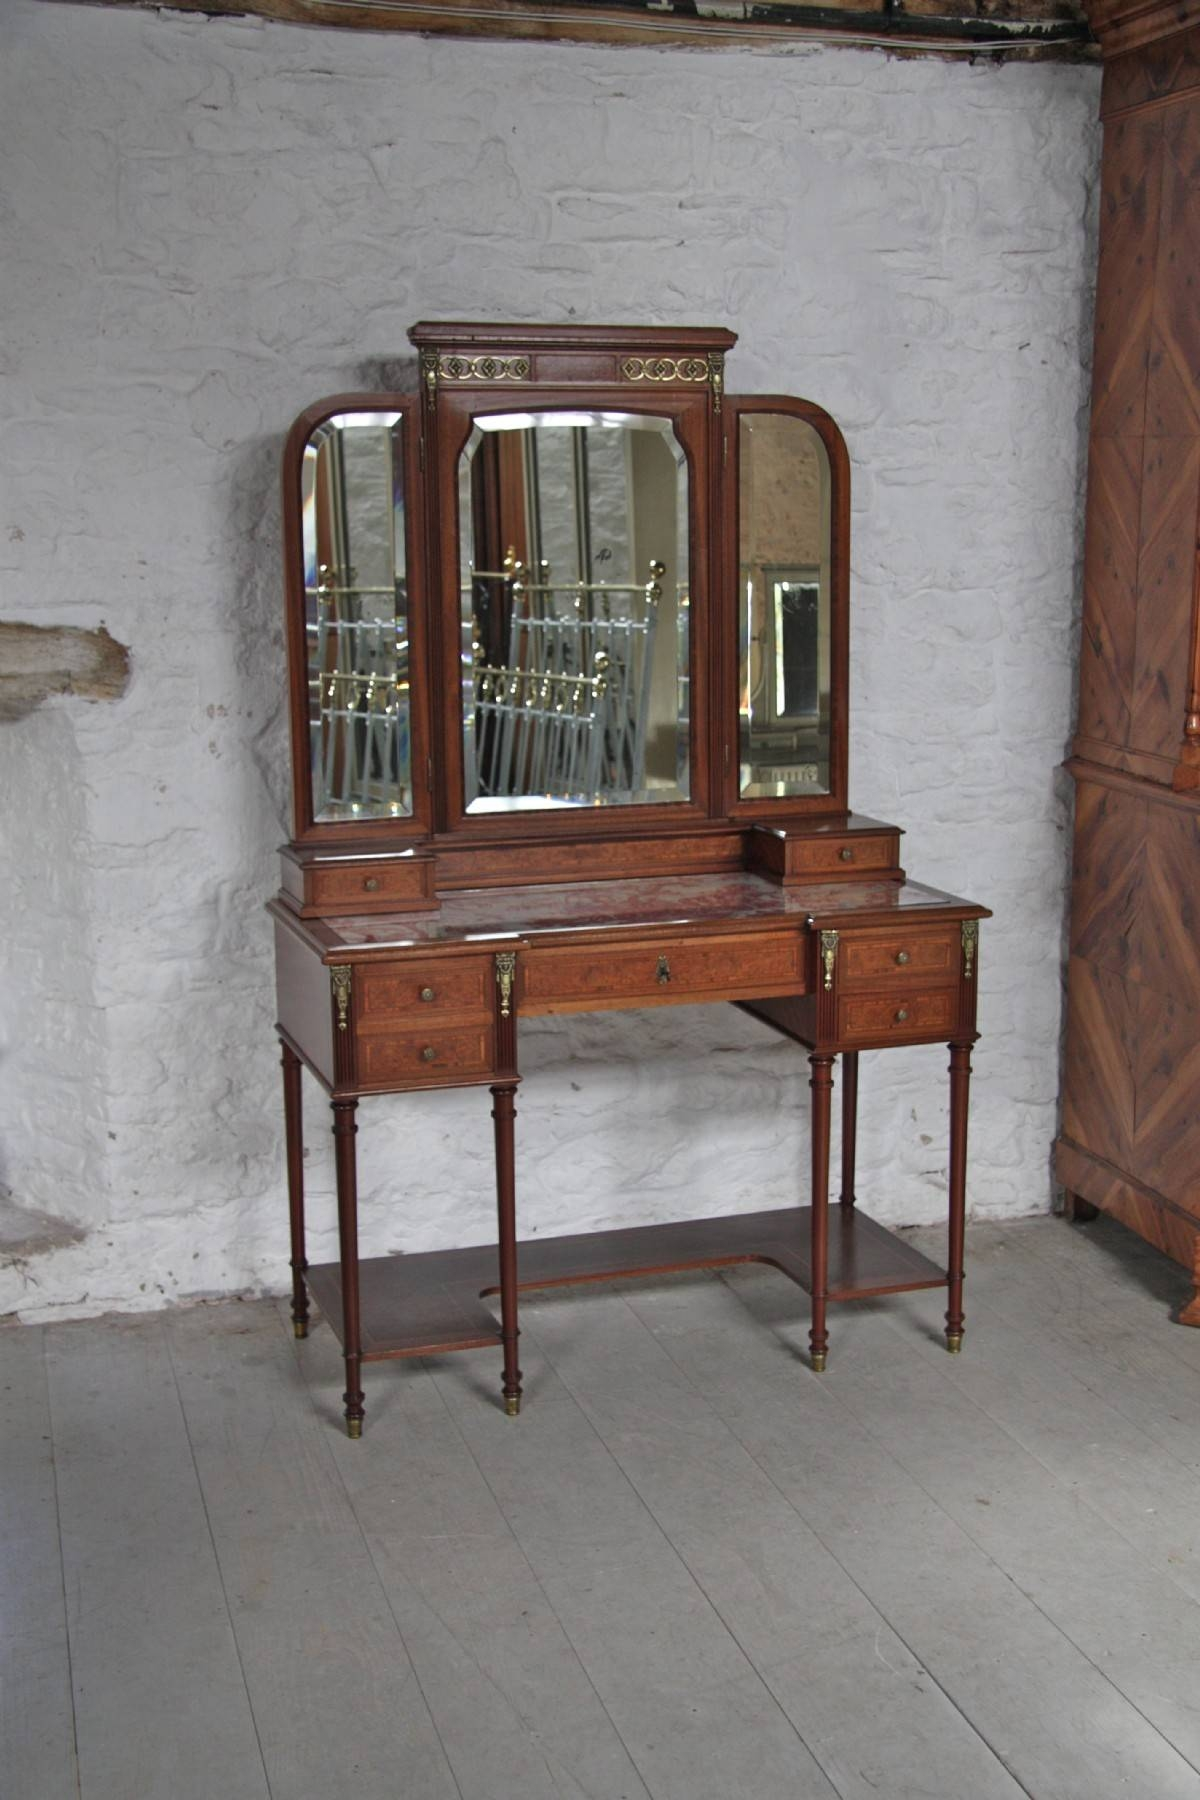 French Louis Xv1 Style Three Mirror Fruitwood Dressing Table intended for French Style Dressing Table Mirrors (Image 11 of 25)